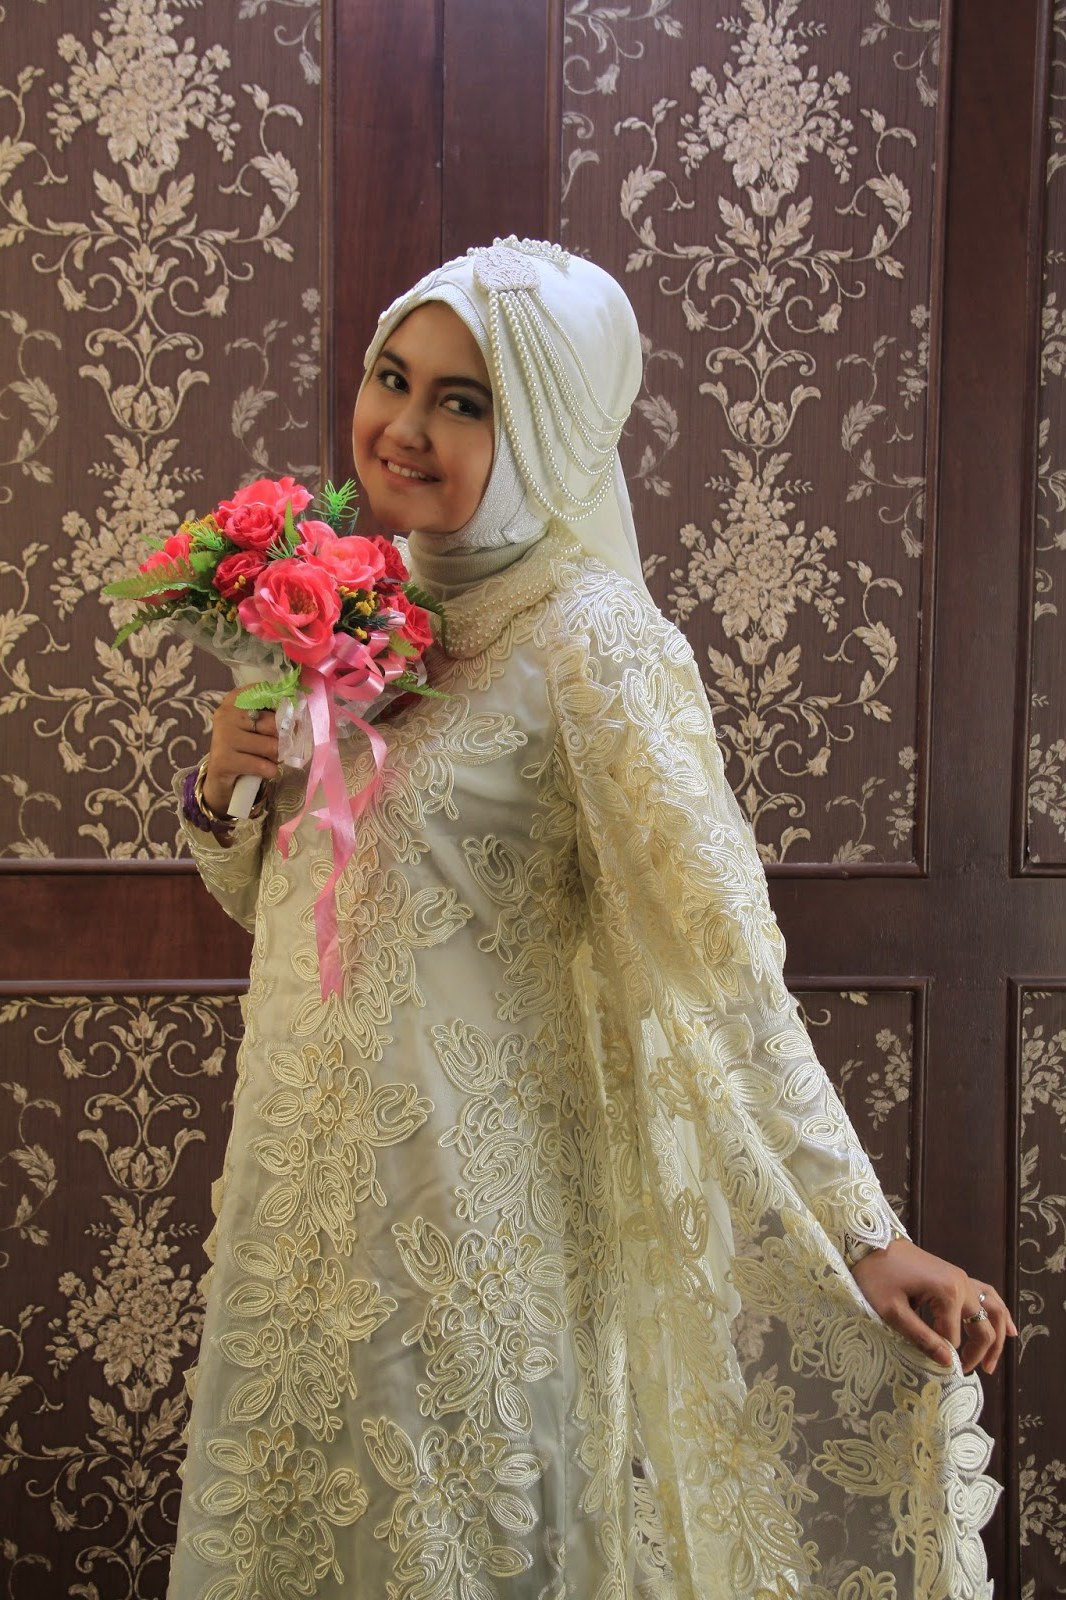 Model Gaun Muslimah Pengantin T8dj Padme Wedding Dress Confessions Of A Seamstress the